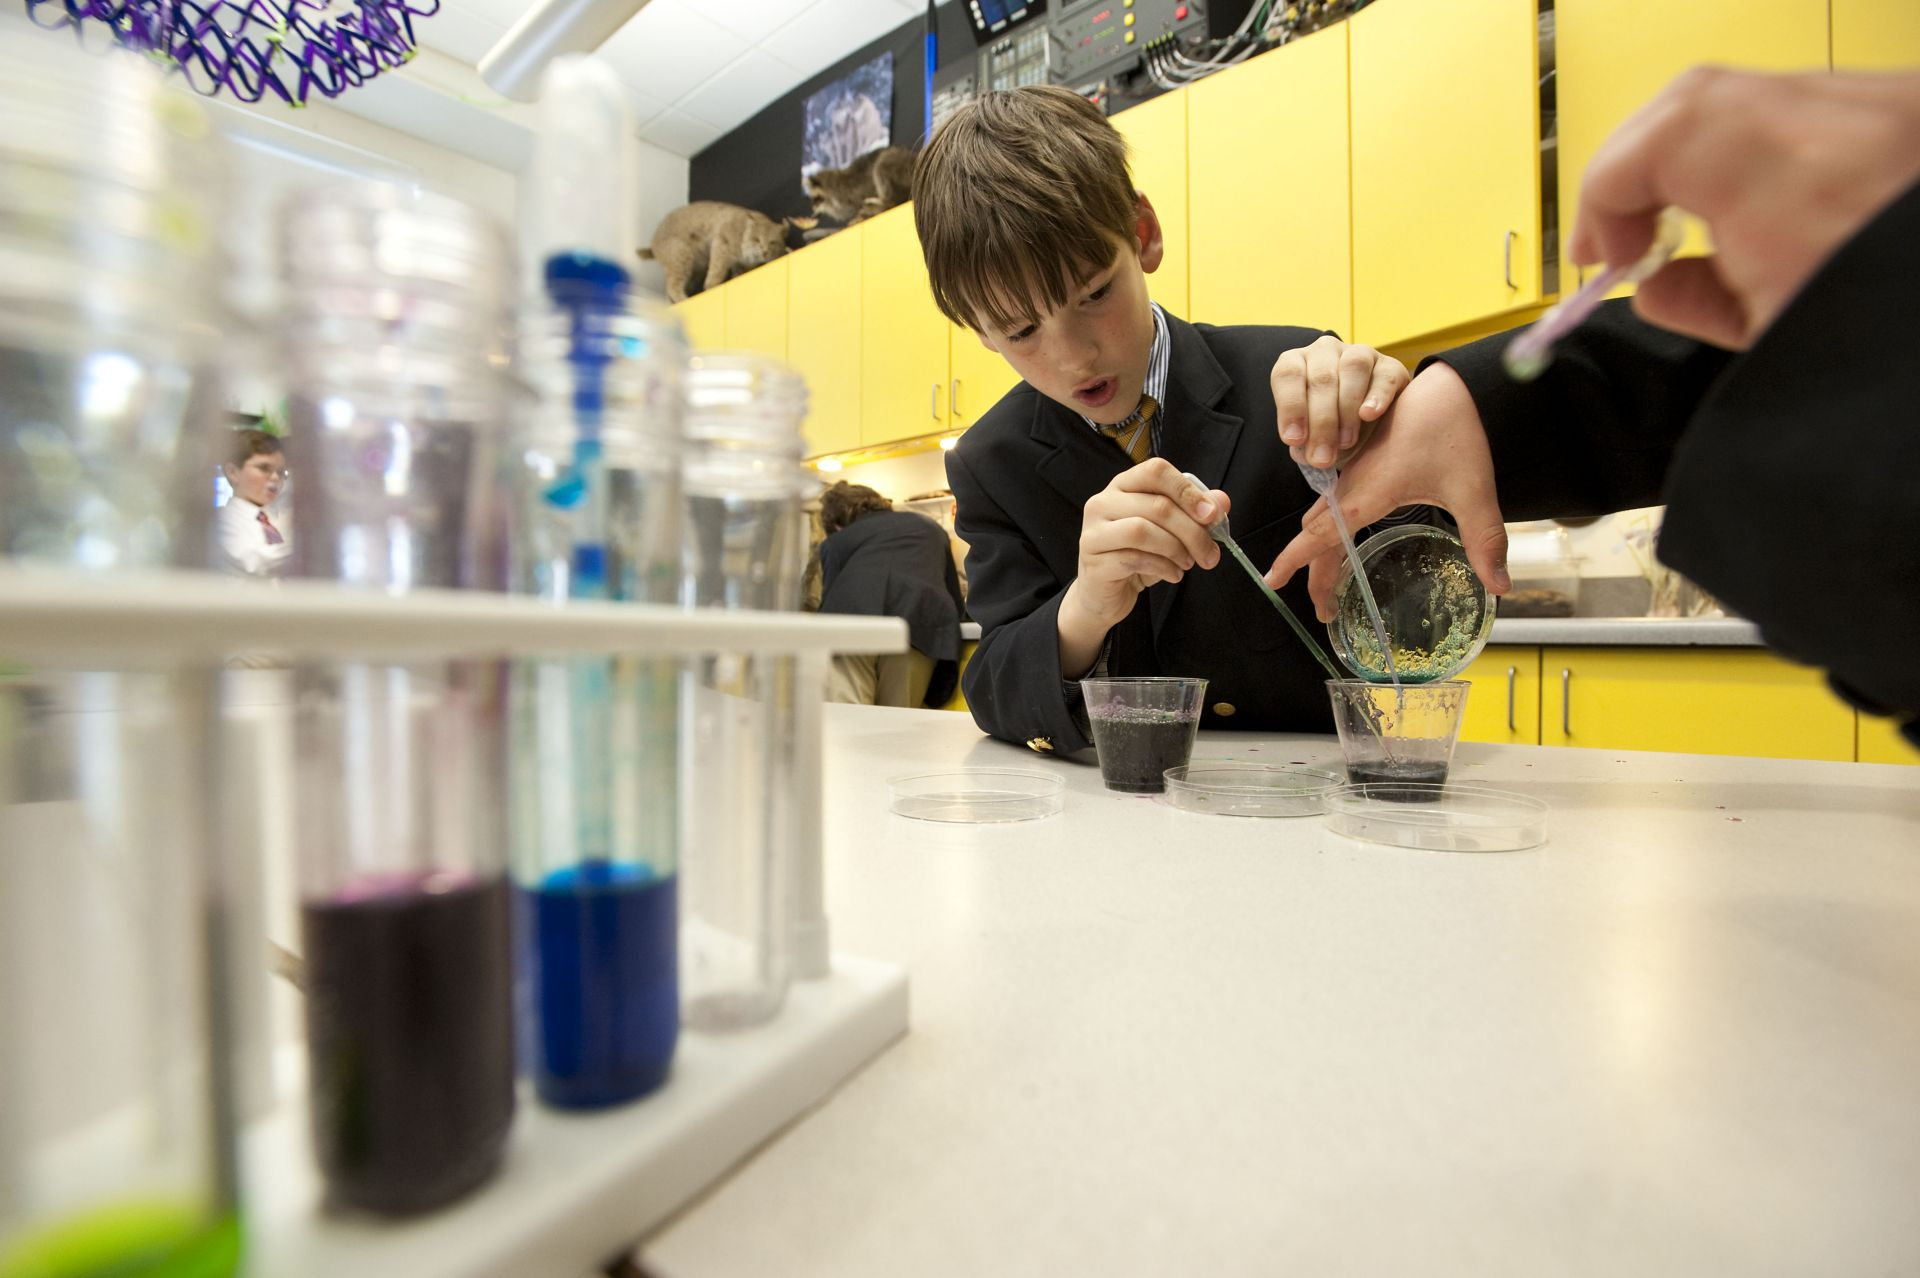 The Perrine Science Center: With plenty of classroom instruction space and clean, uncluttered lab space, the Science Center is perfect for experimentation and hands-on learning.